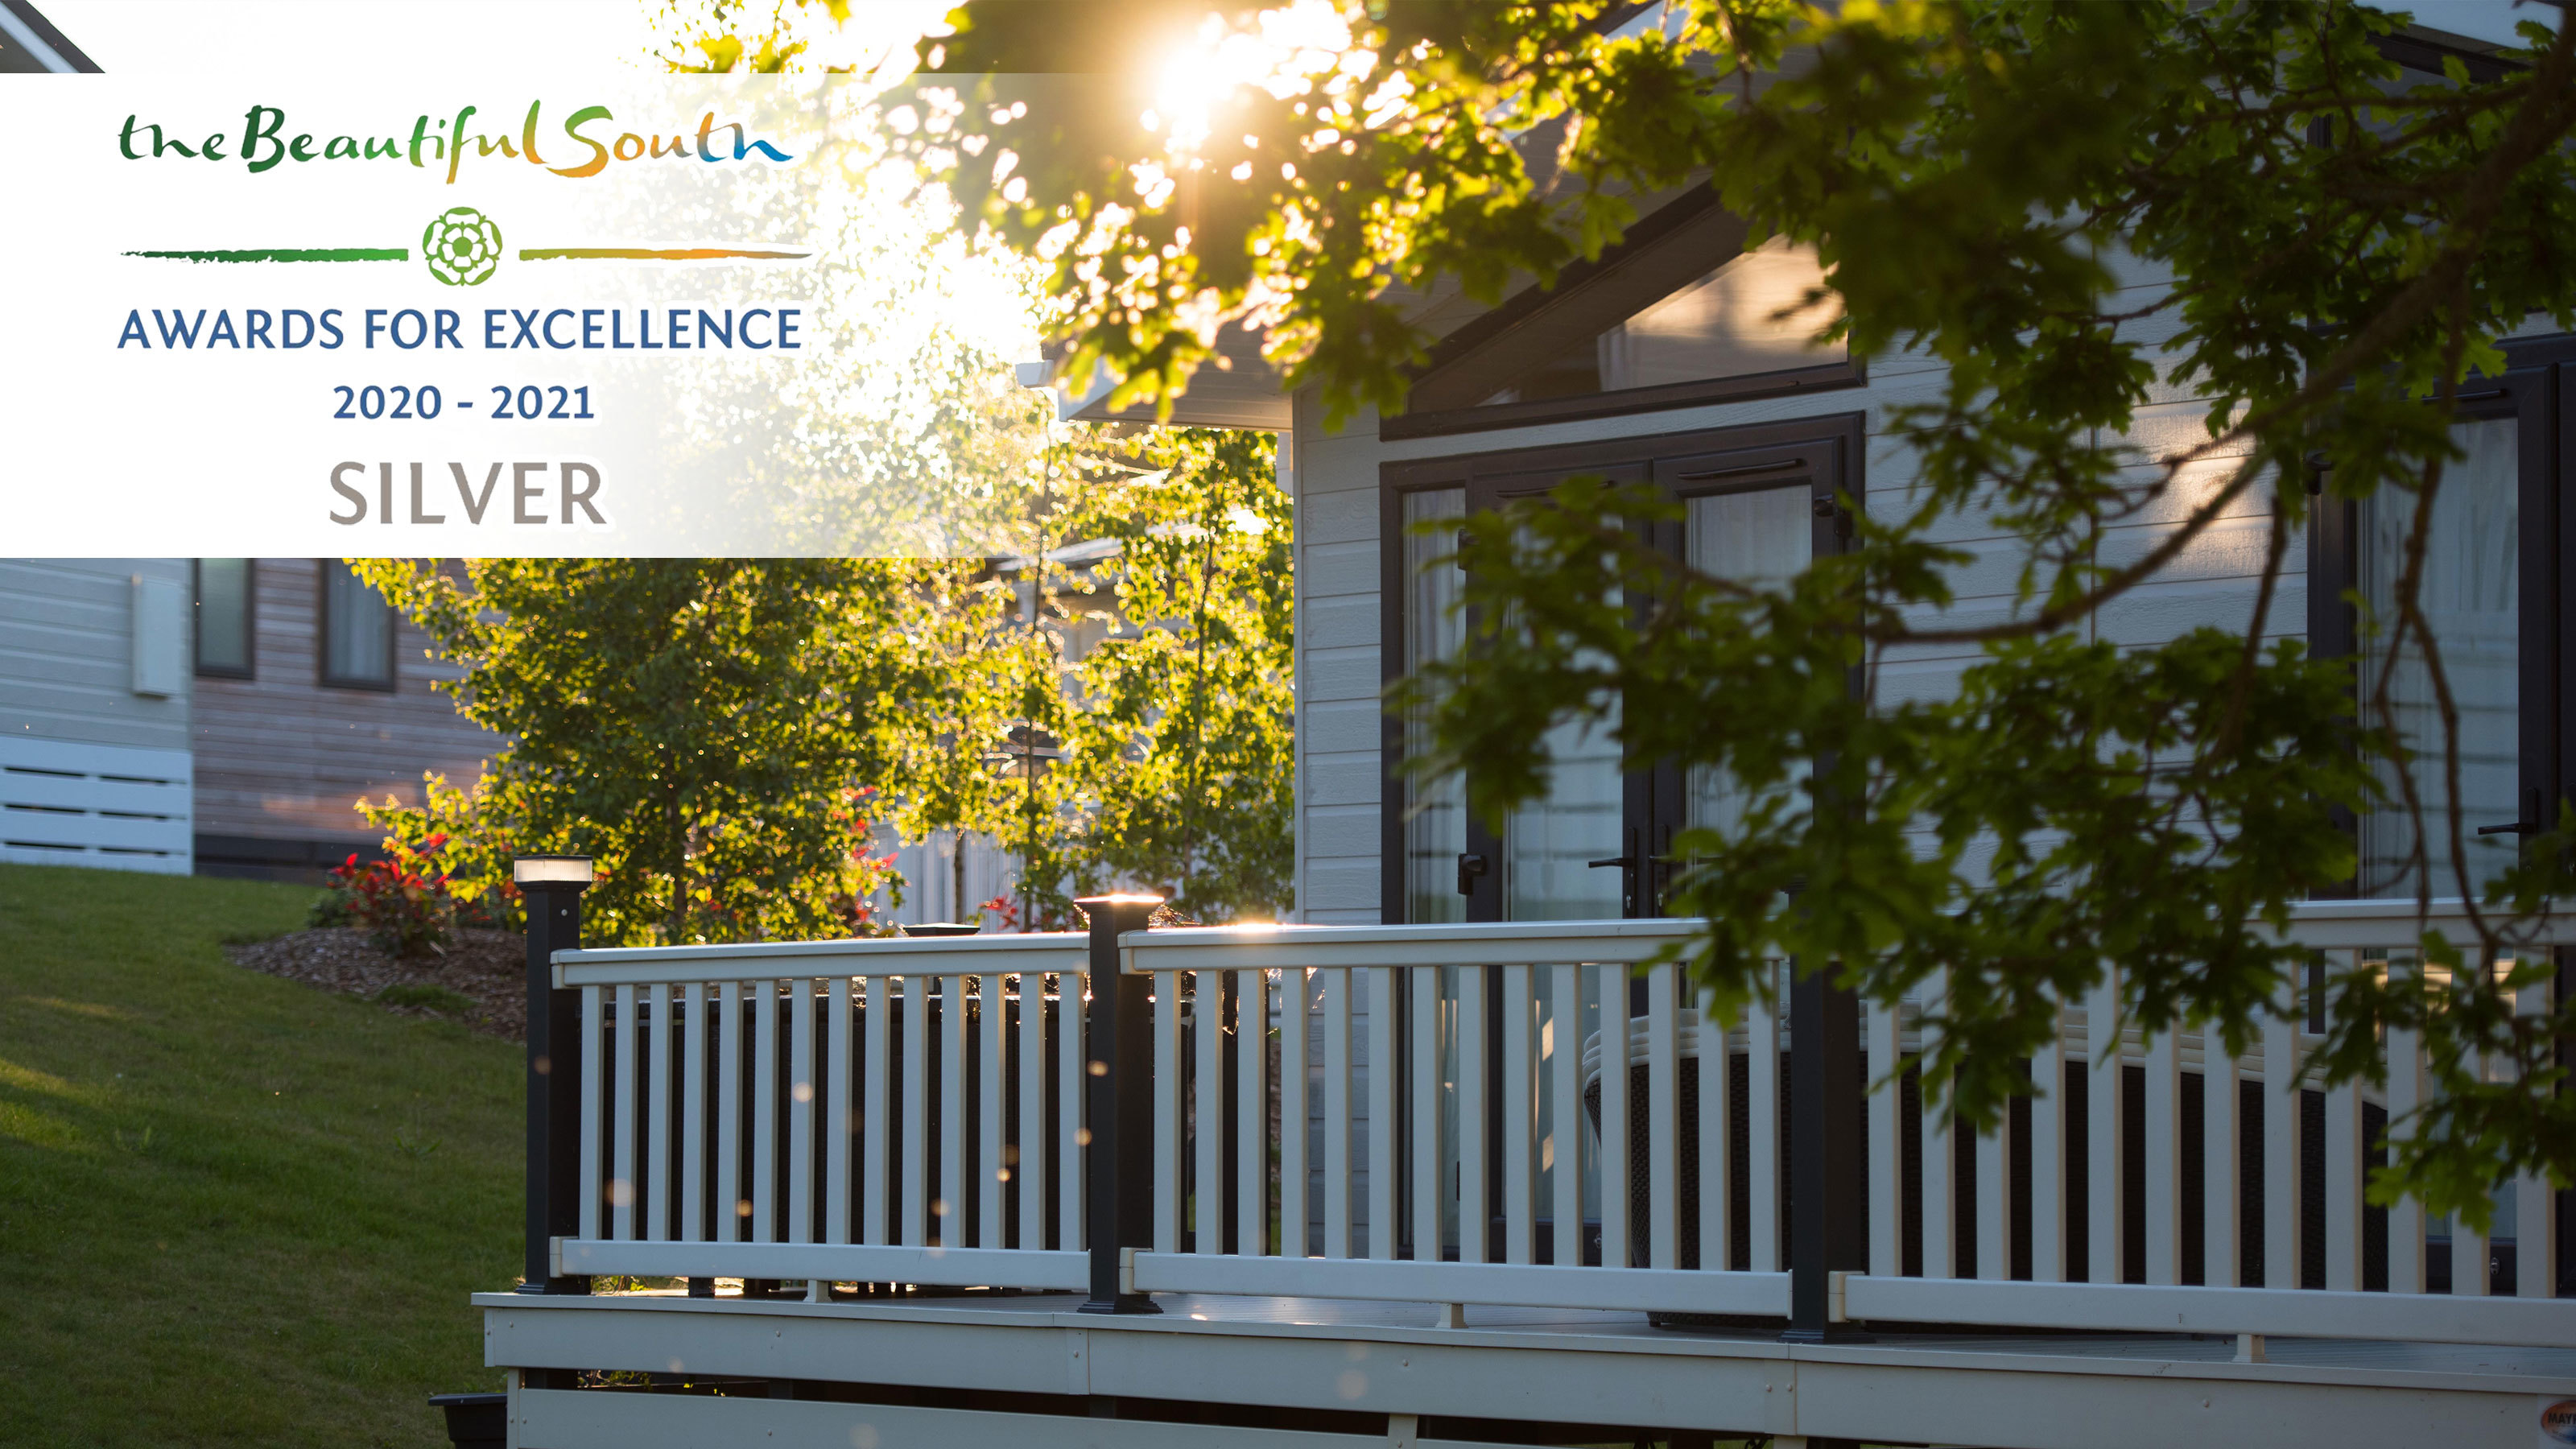 Woodland holiday home at Shorefield Country Park with Beautiful South Awards logo